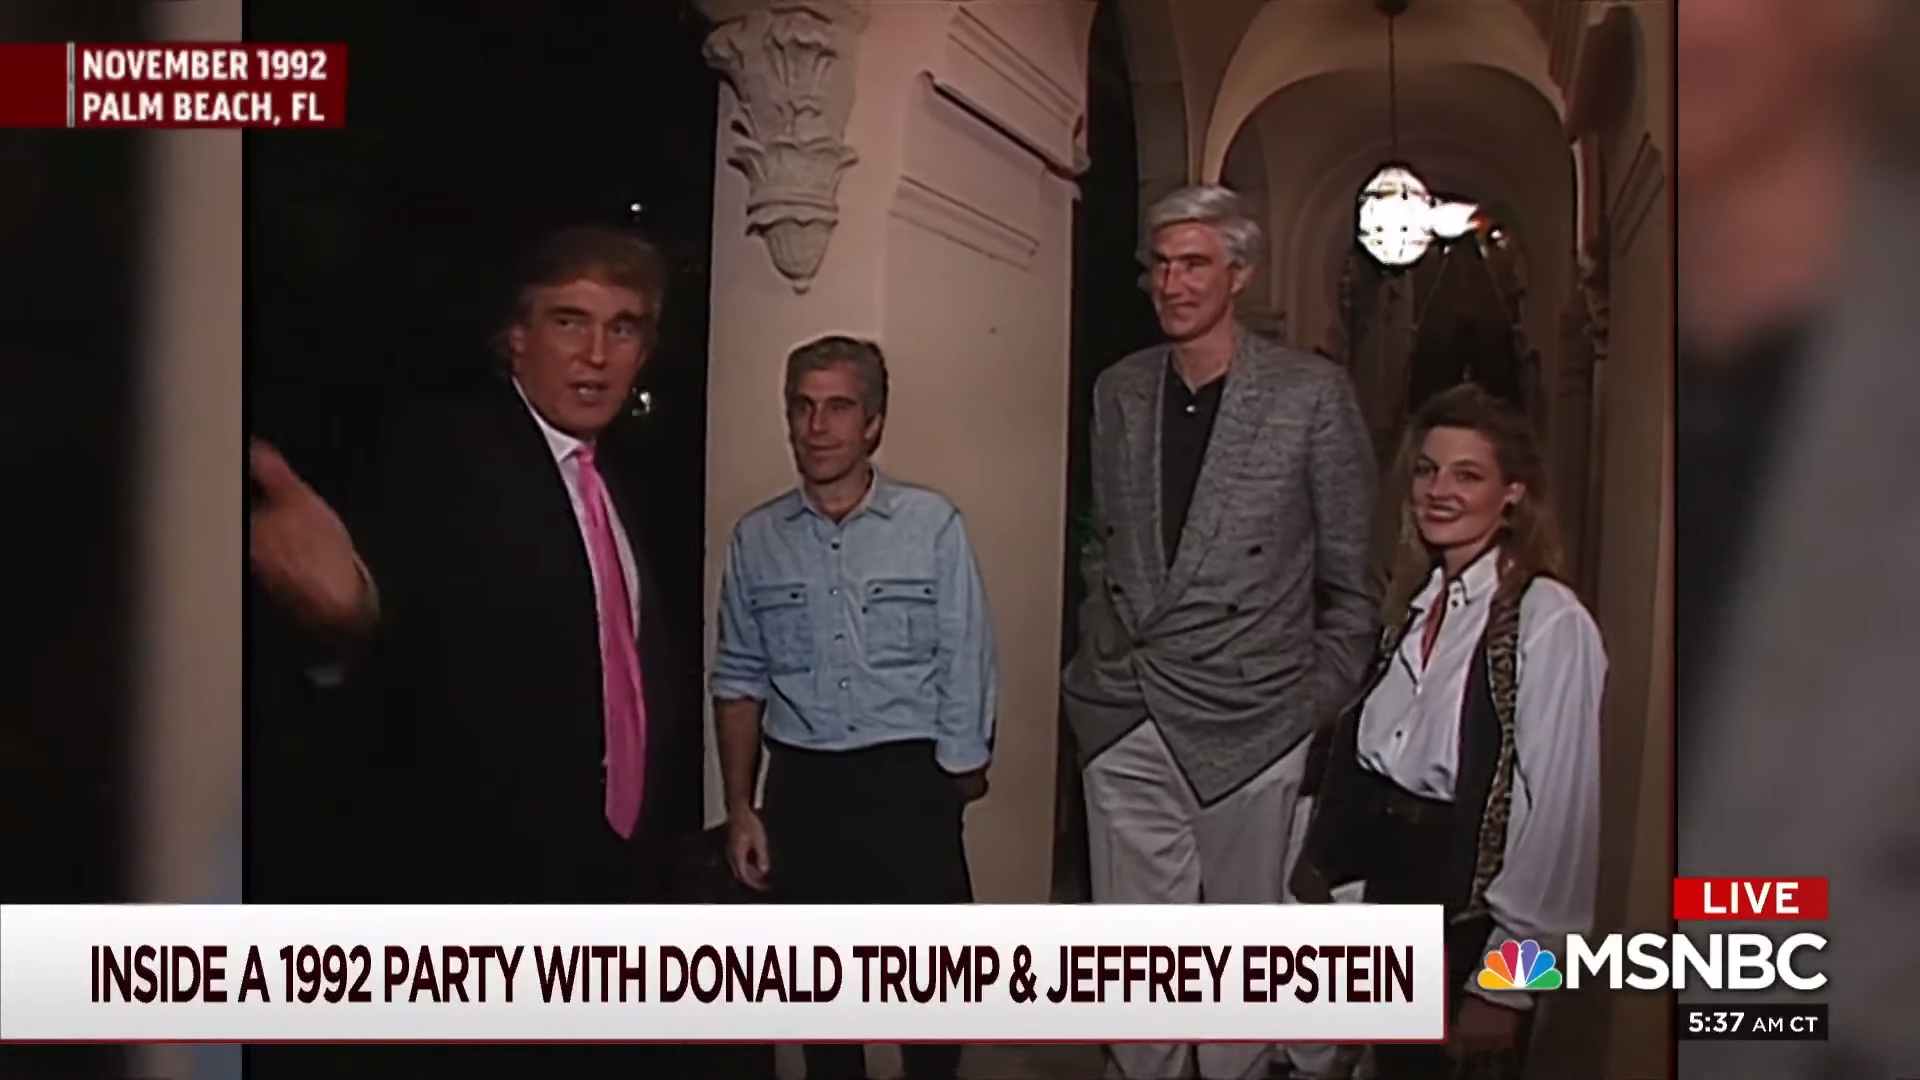 Inside a party with Donald Trump and Jeffrey Epstein